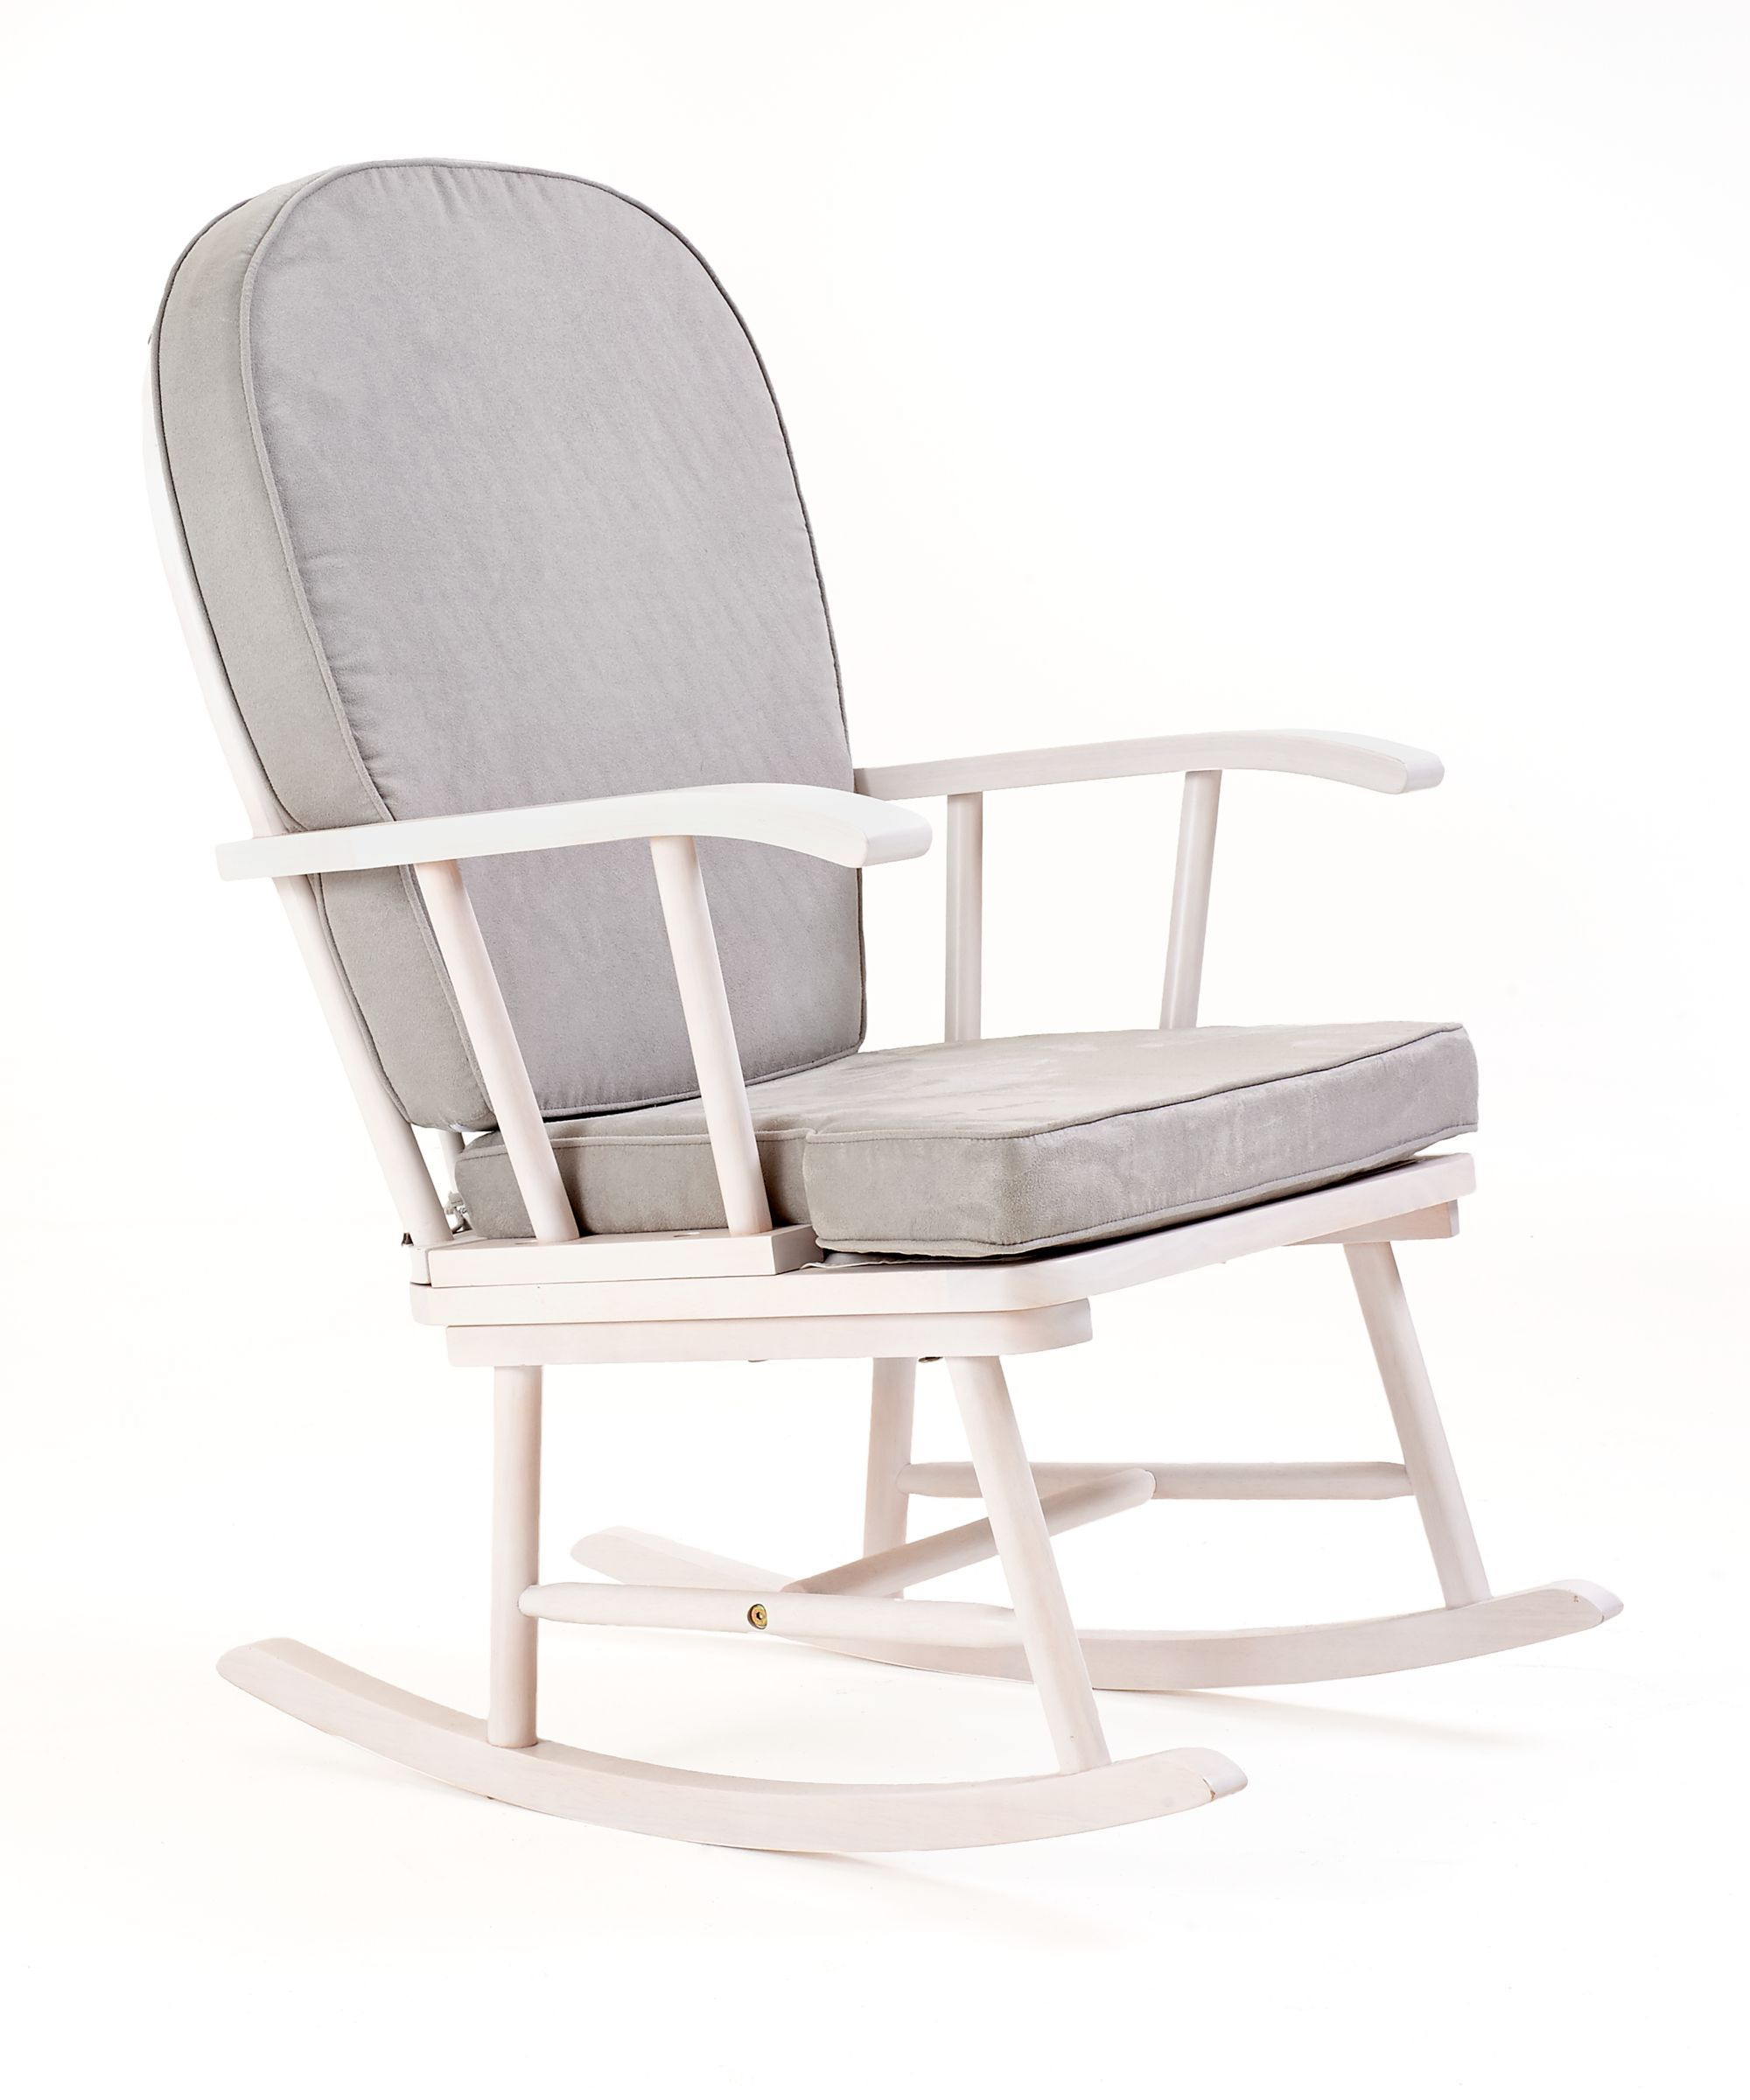 mothercare rocking chair with grey cushion white pushchairs rh pinterest com